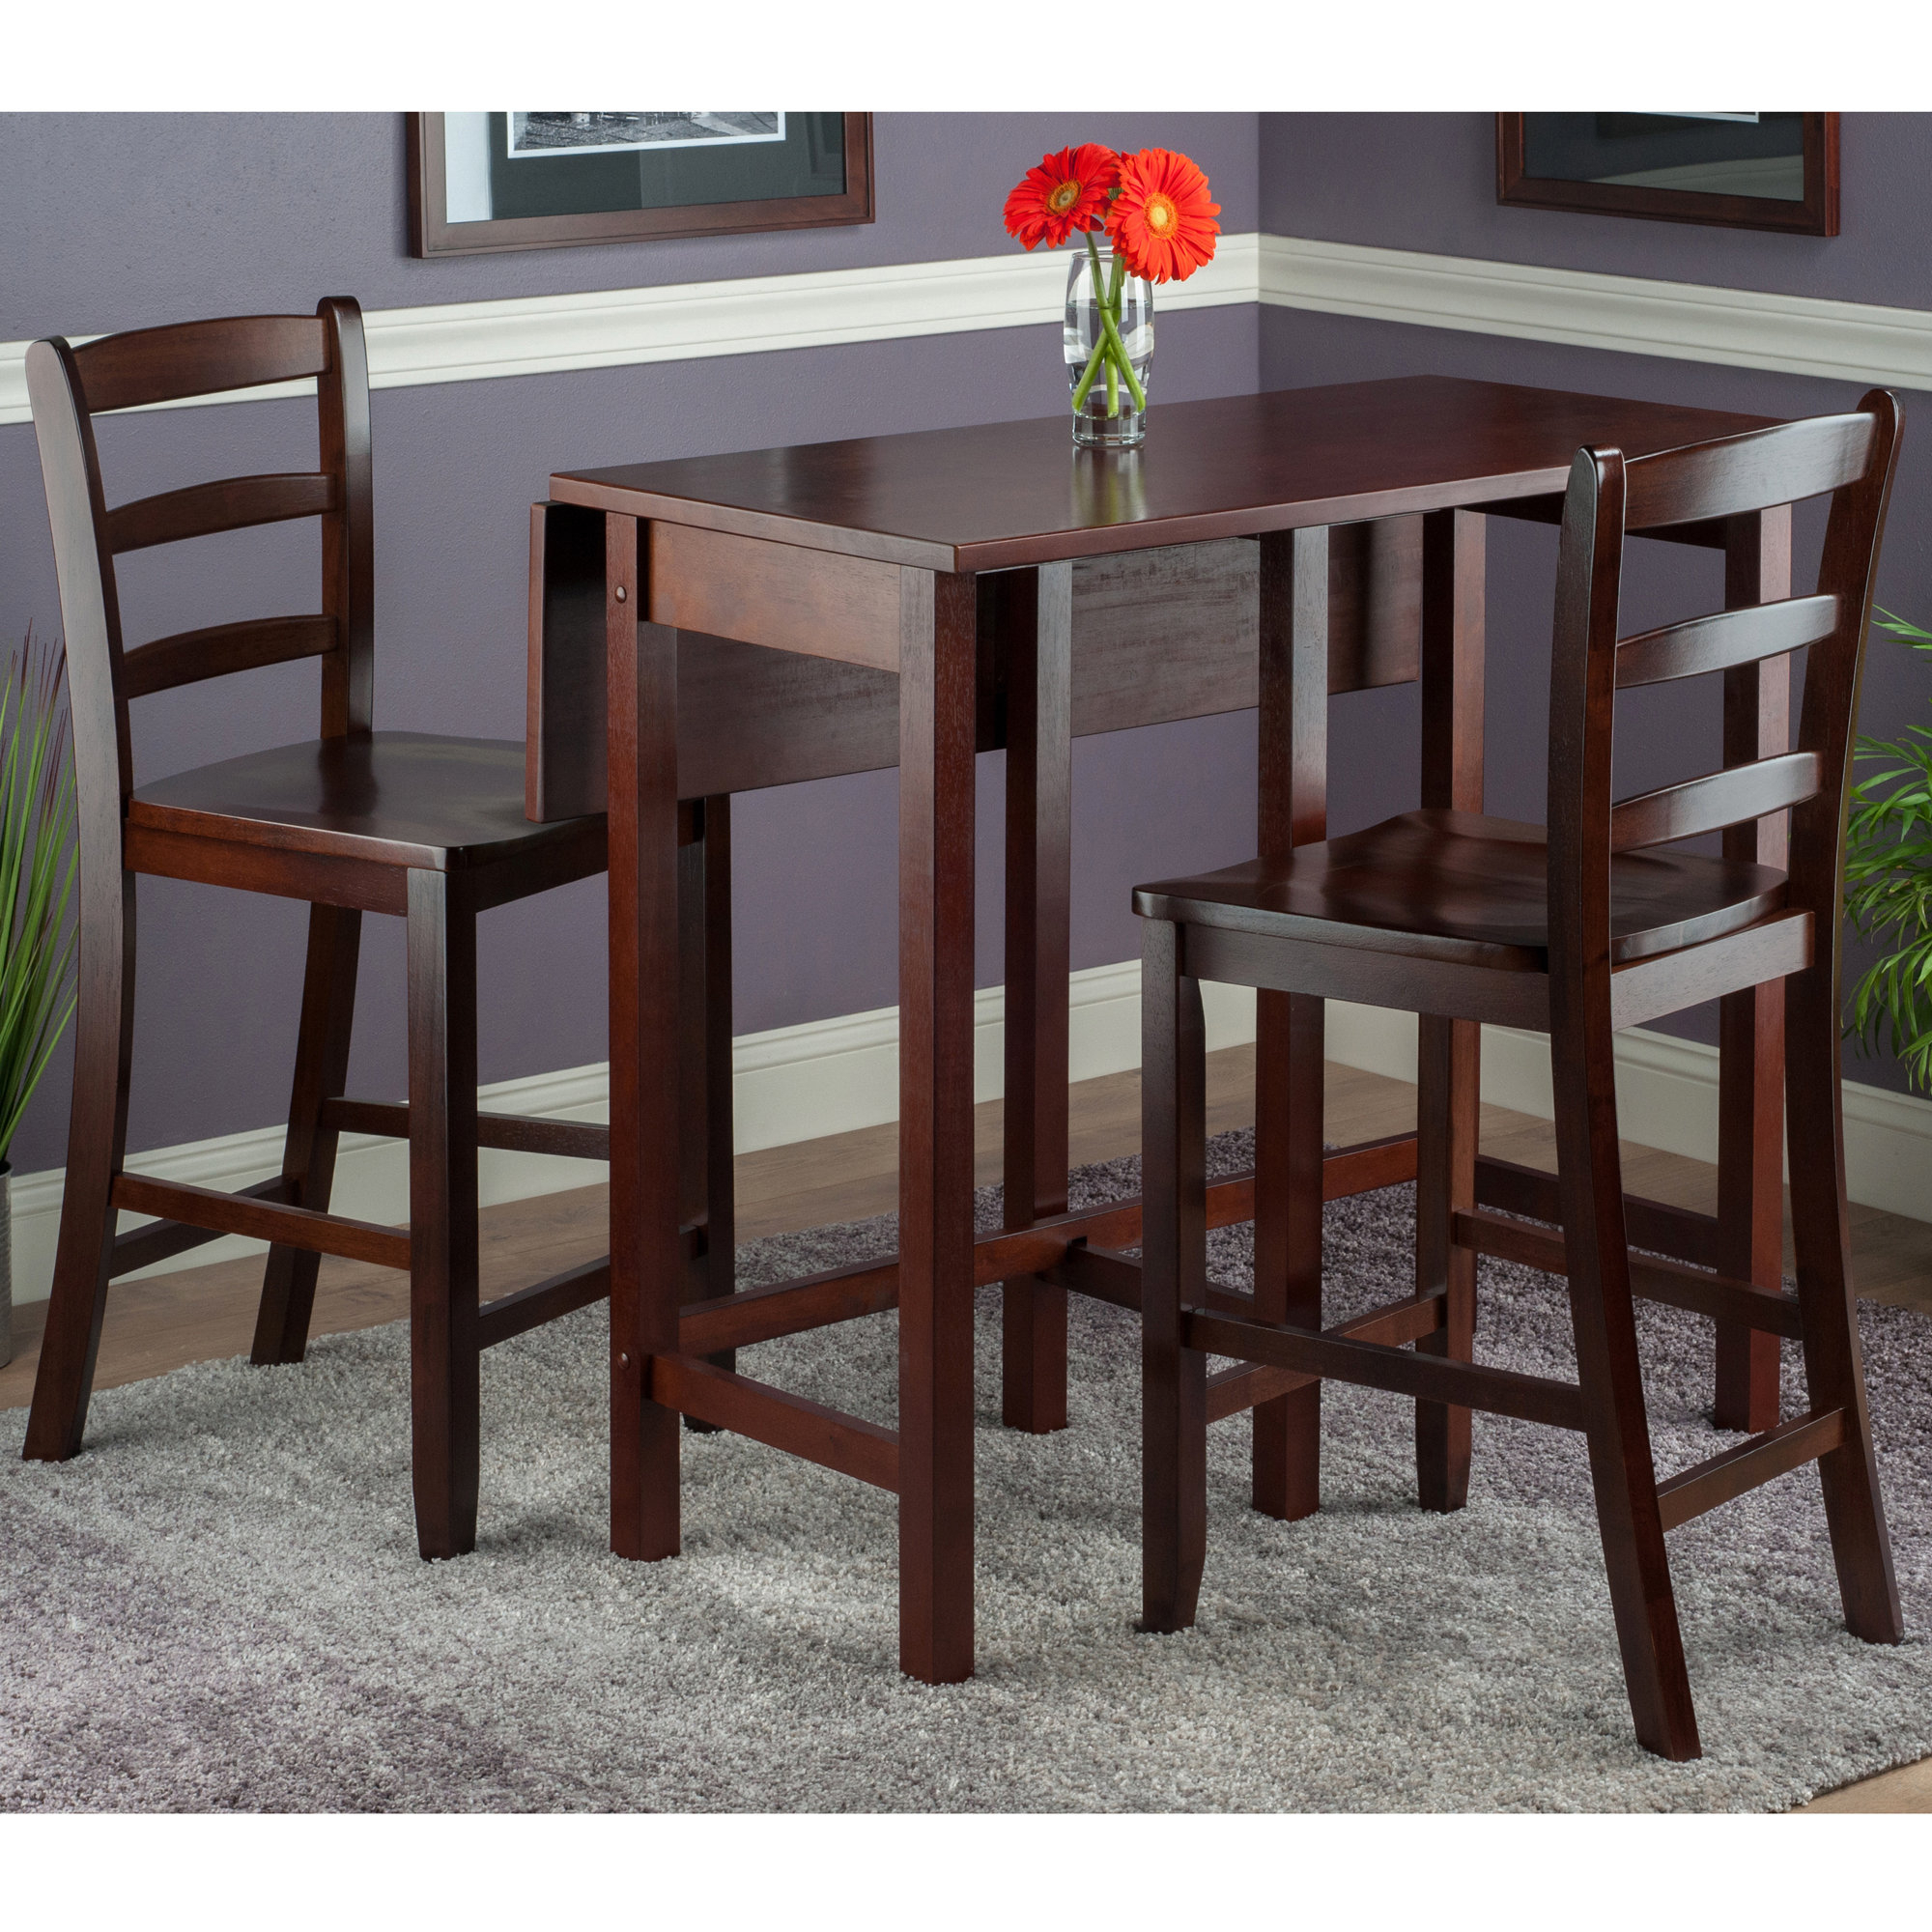 Bettencourt 3 Piece Drop Leaf Dining Set Inside Most Up To Date Bettencourt 3 Piece Counter Height Solid Wood Dining Sets (View 4 of 20)